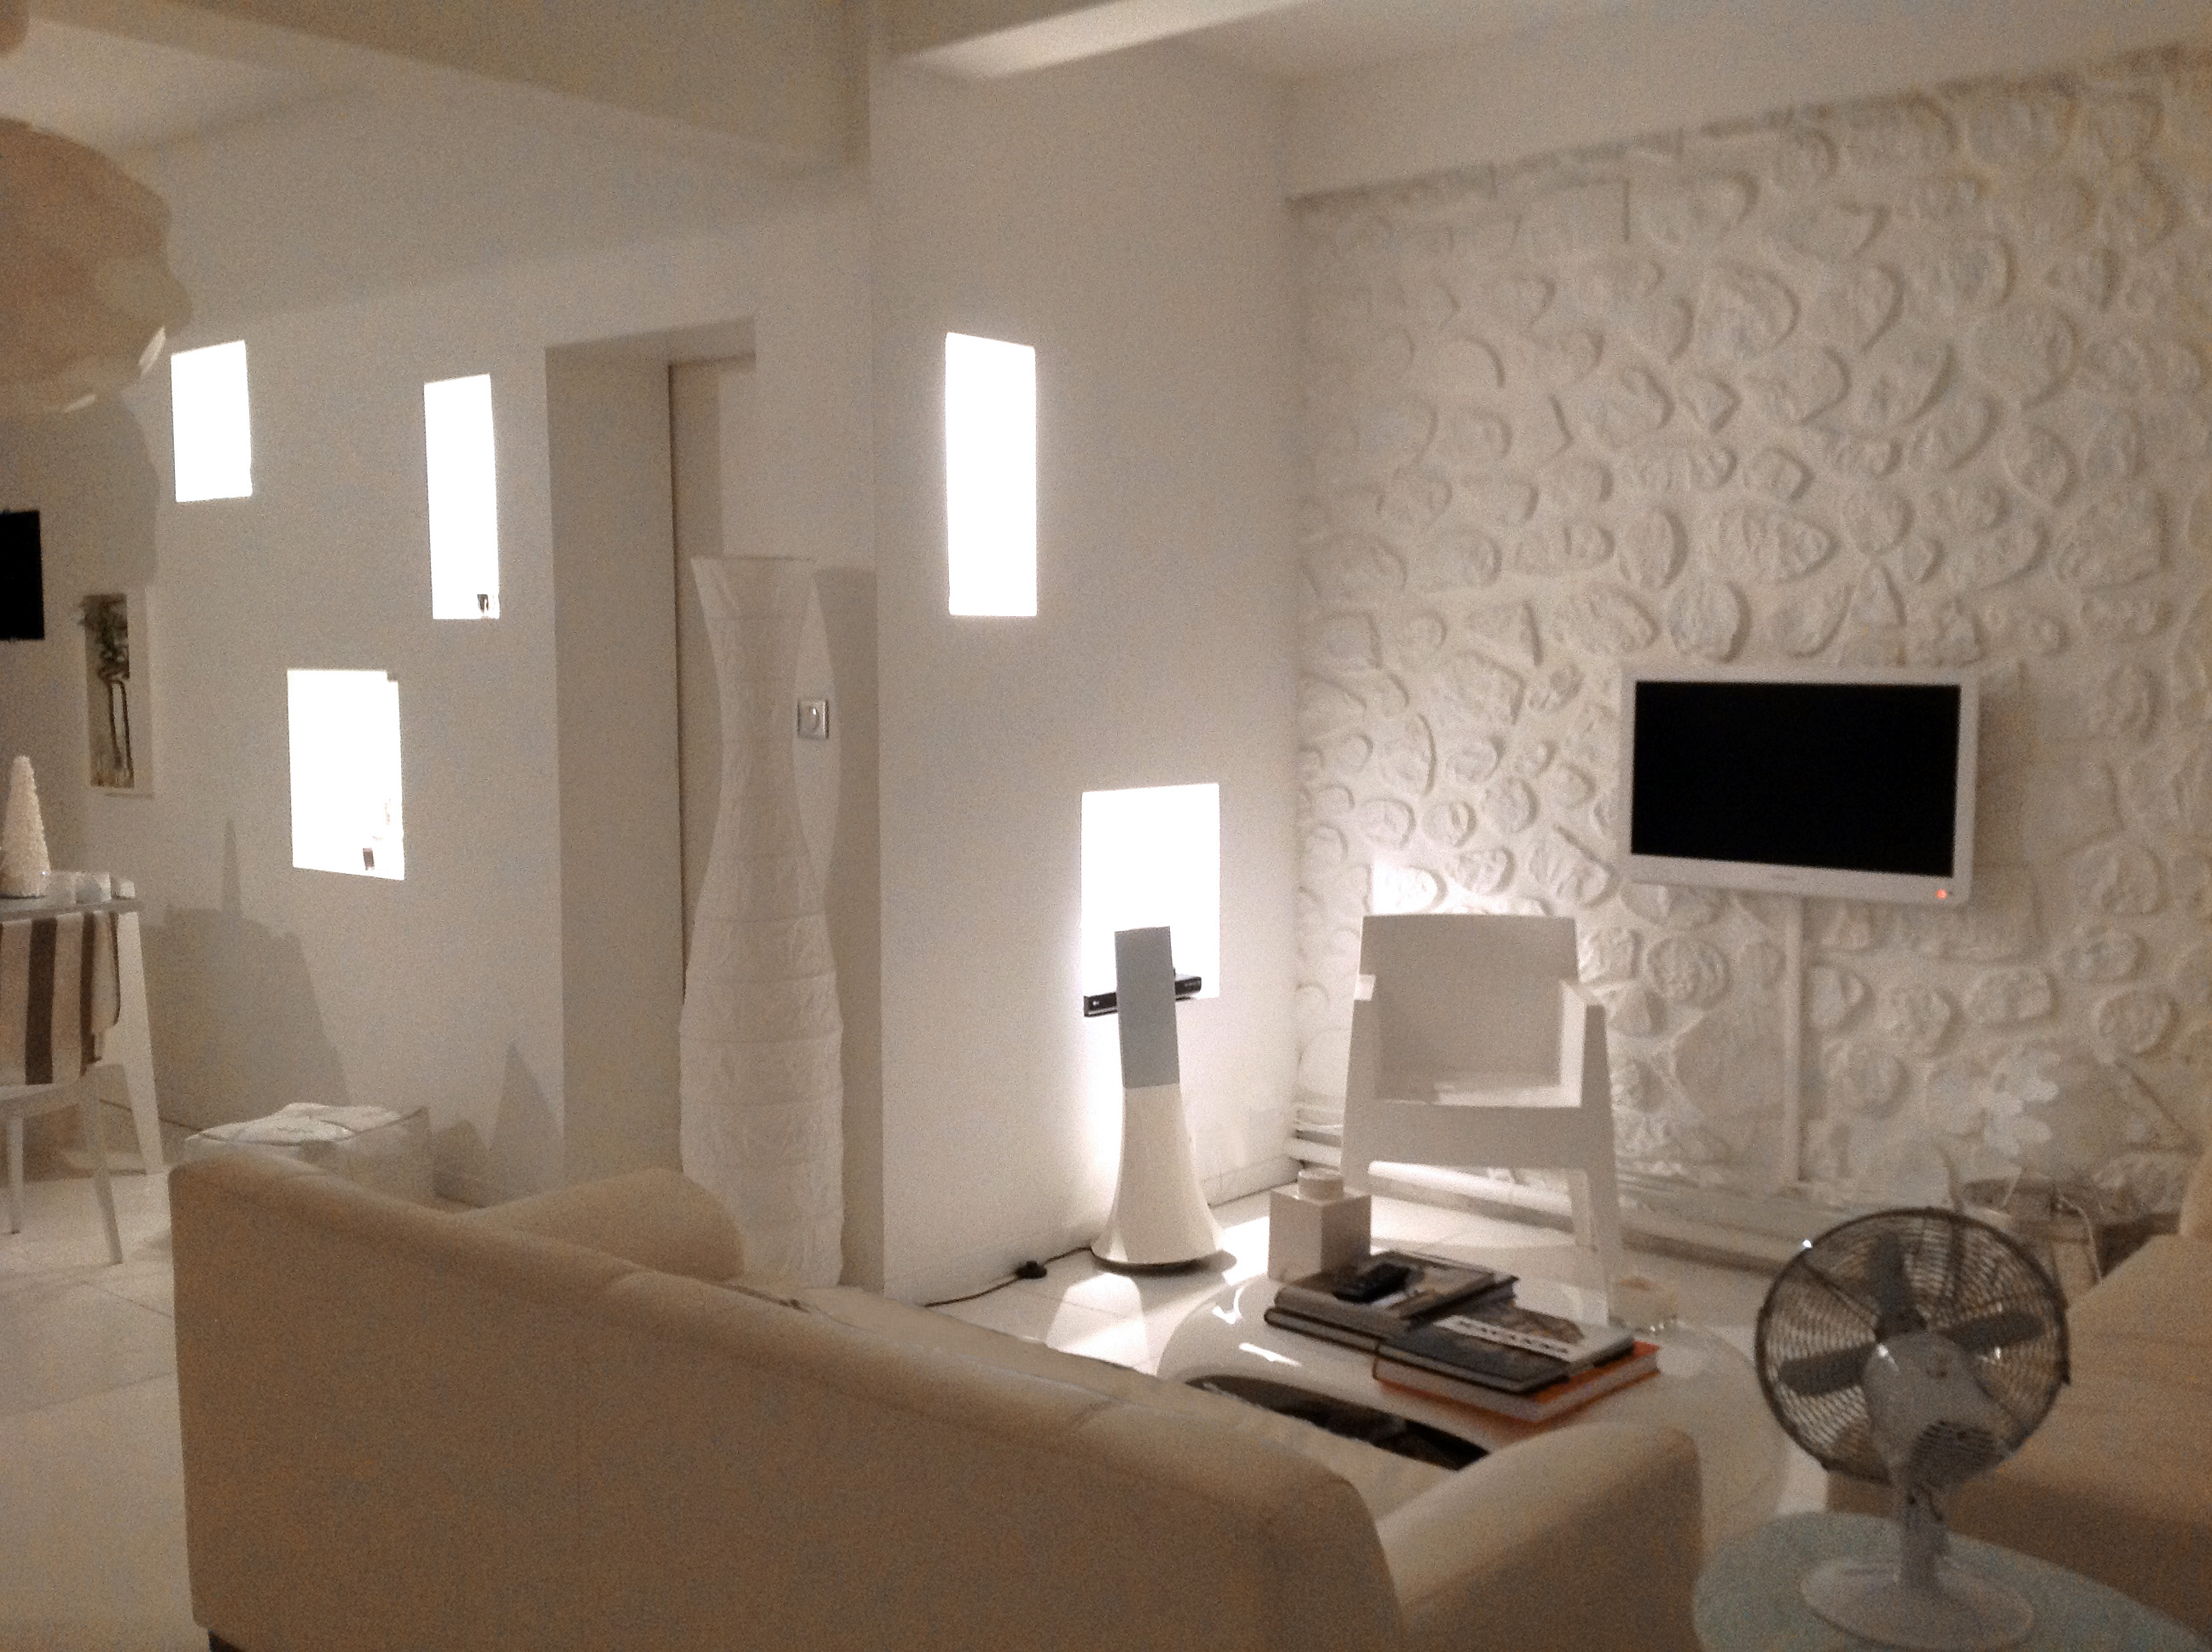 Mod le d coration salon blanc for Modele deco maison interieur